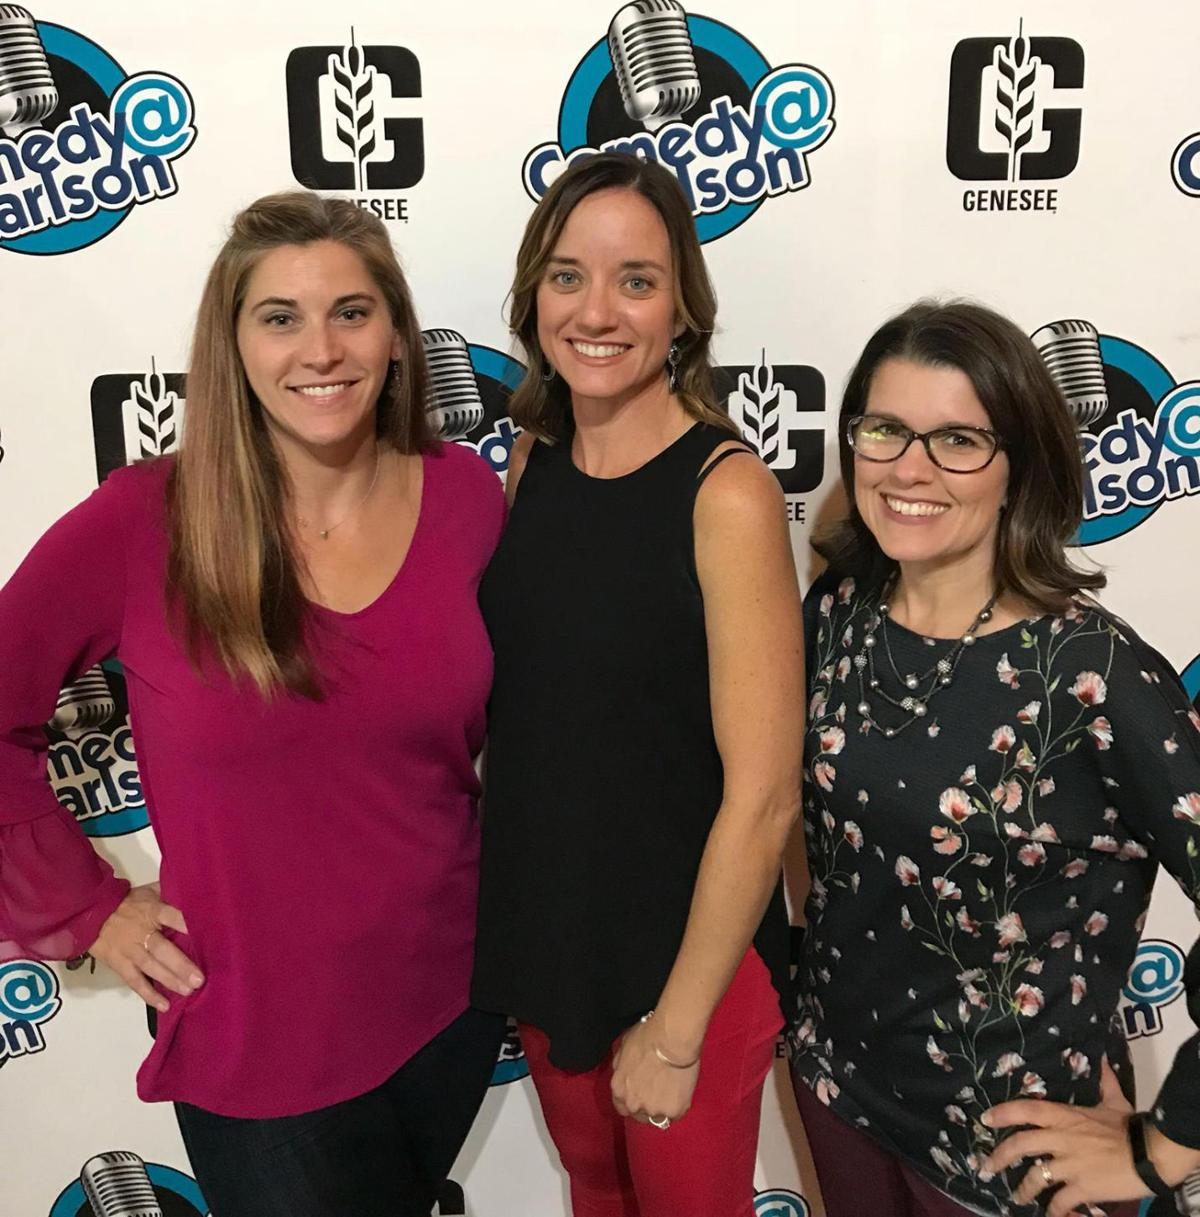 Jeanette Wittmeyer, Colleen Bedford & Jamie Buss